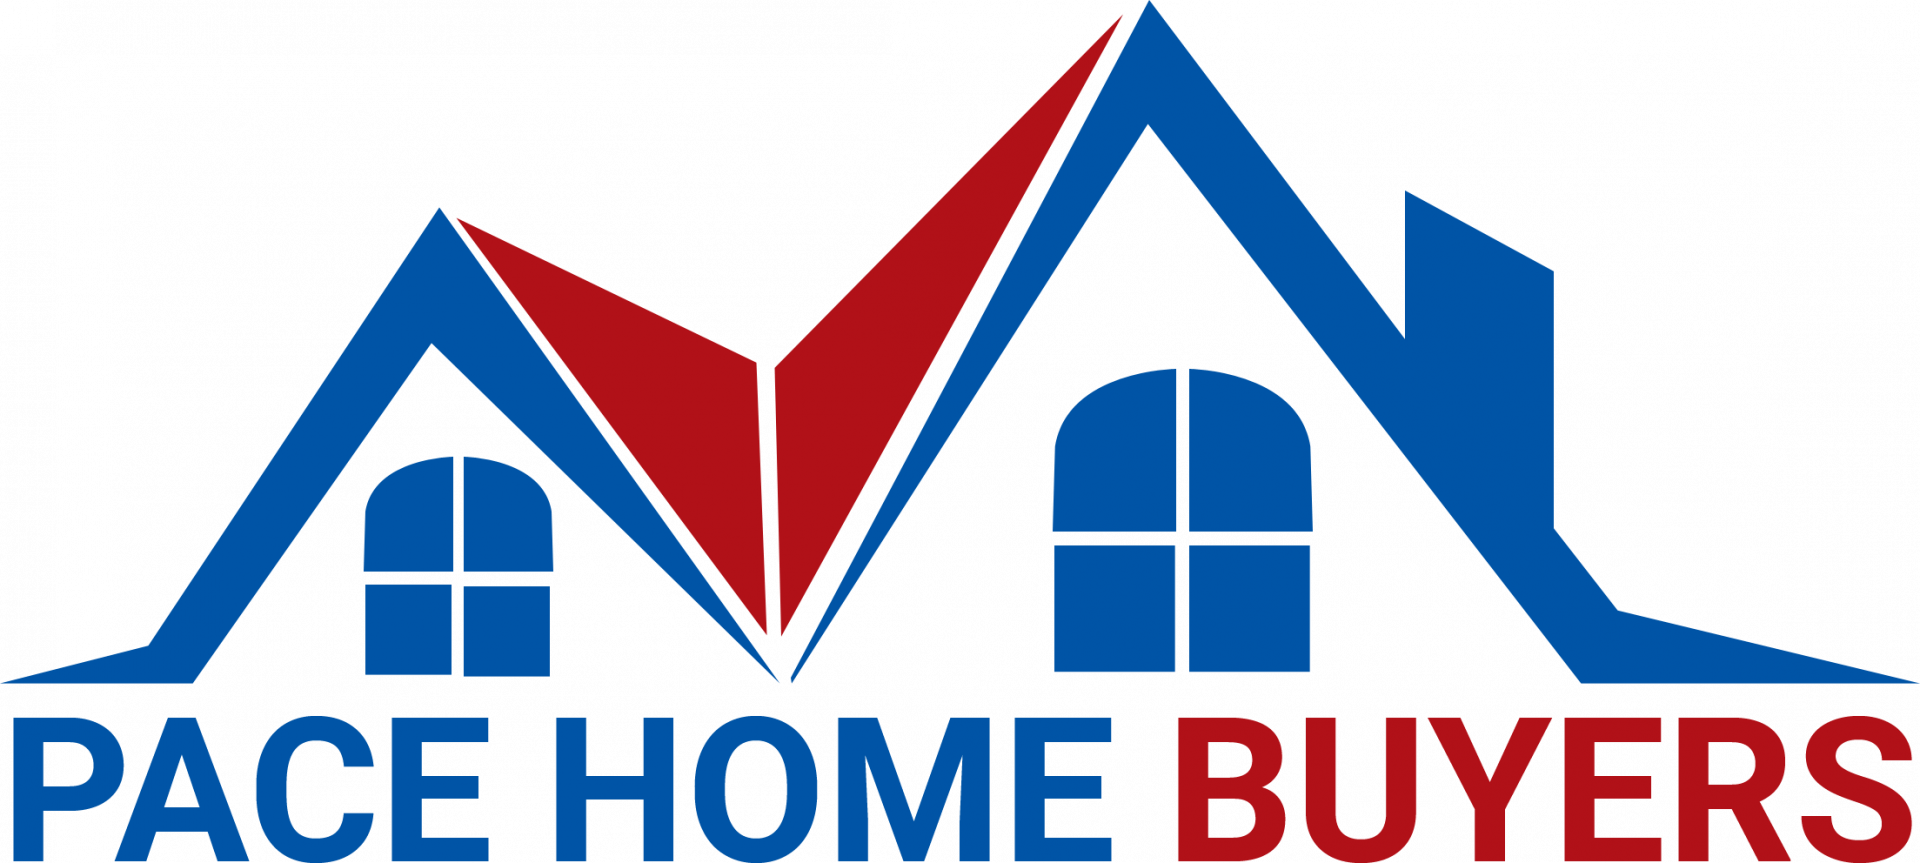 Pace Home Buyers  logo